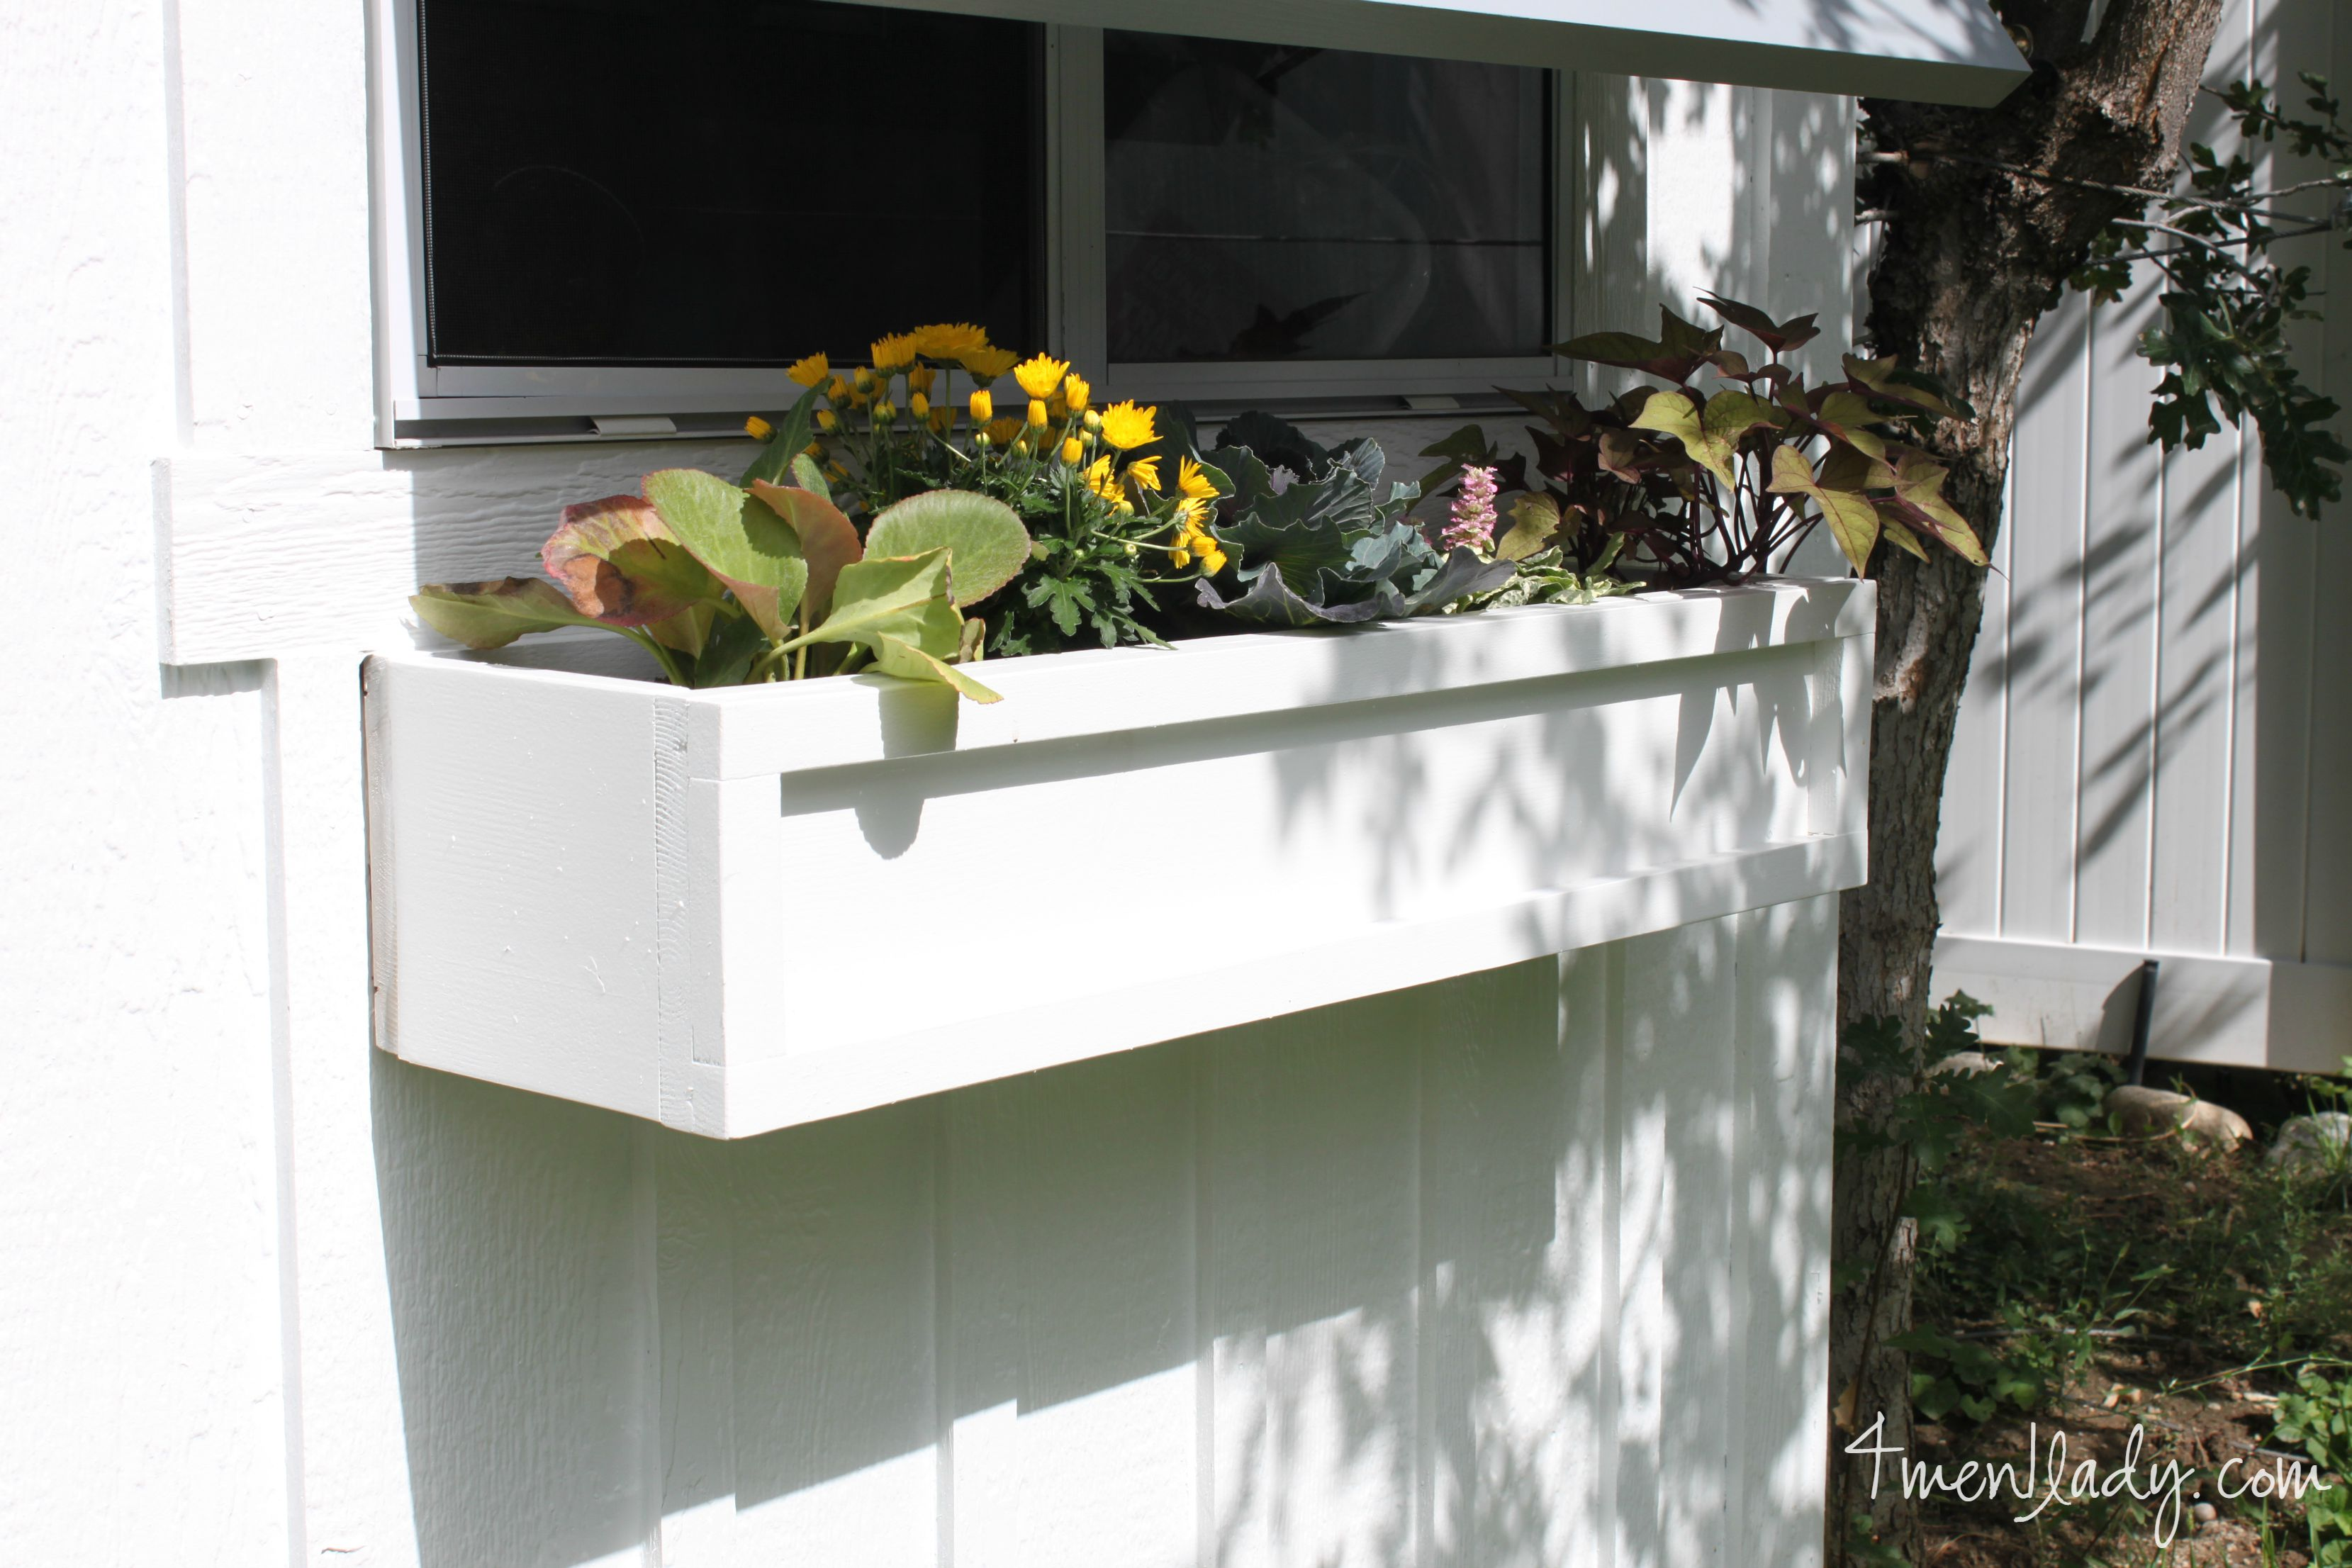 to garden window steps build how a img in box remodelaholic tutorial planter diy